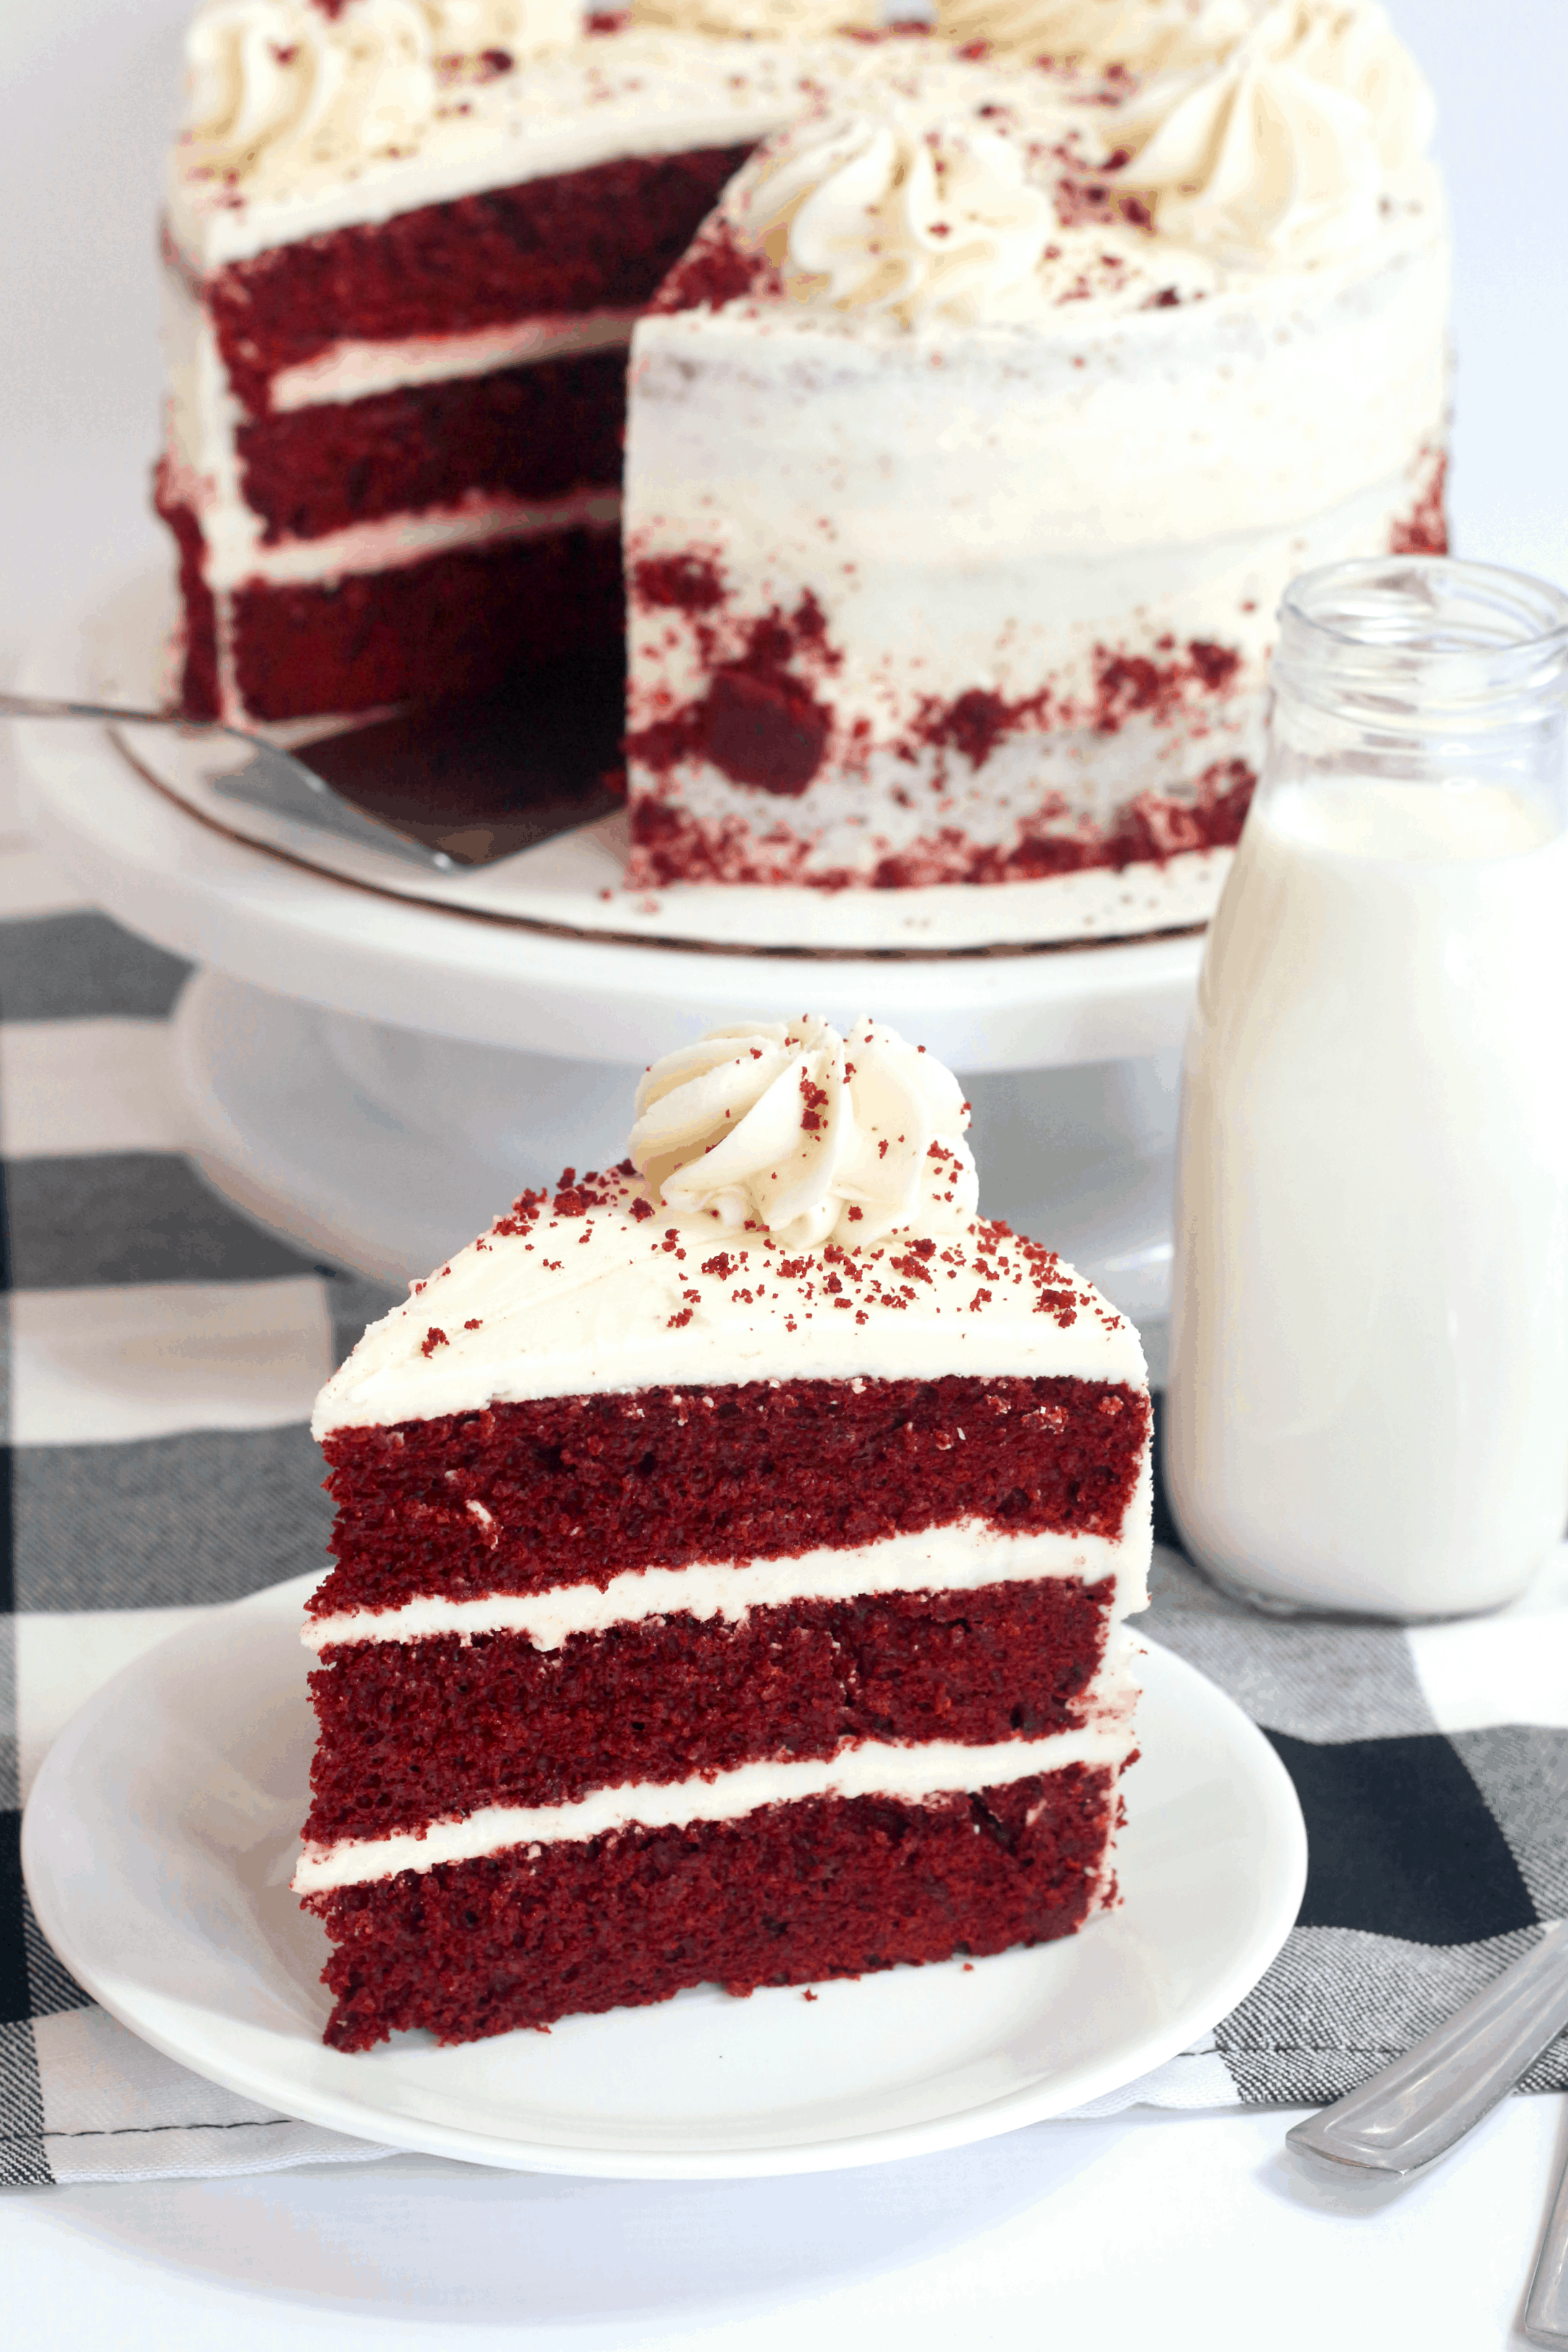 slice ov red velvet cake on a white plate